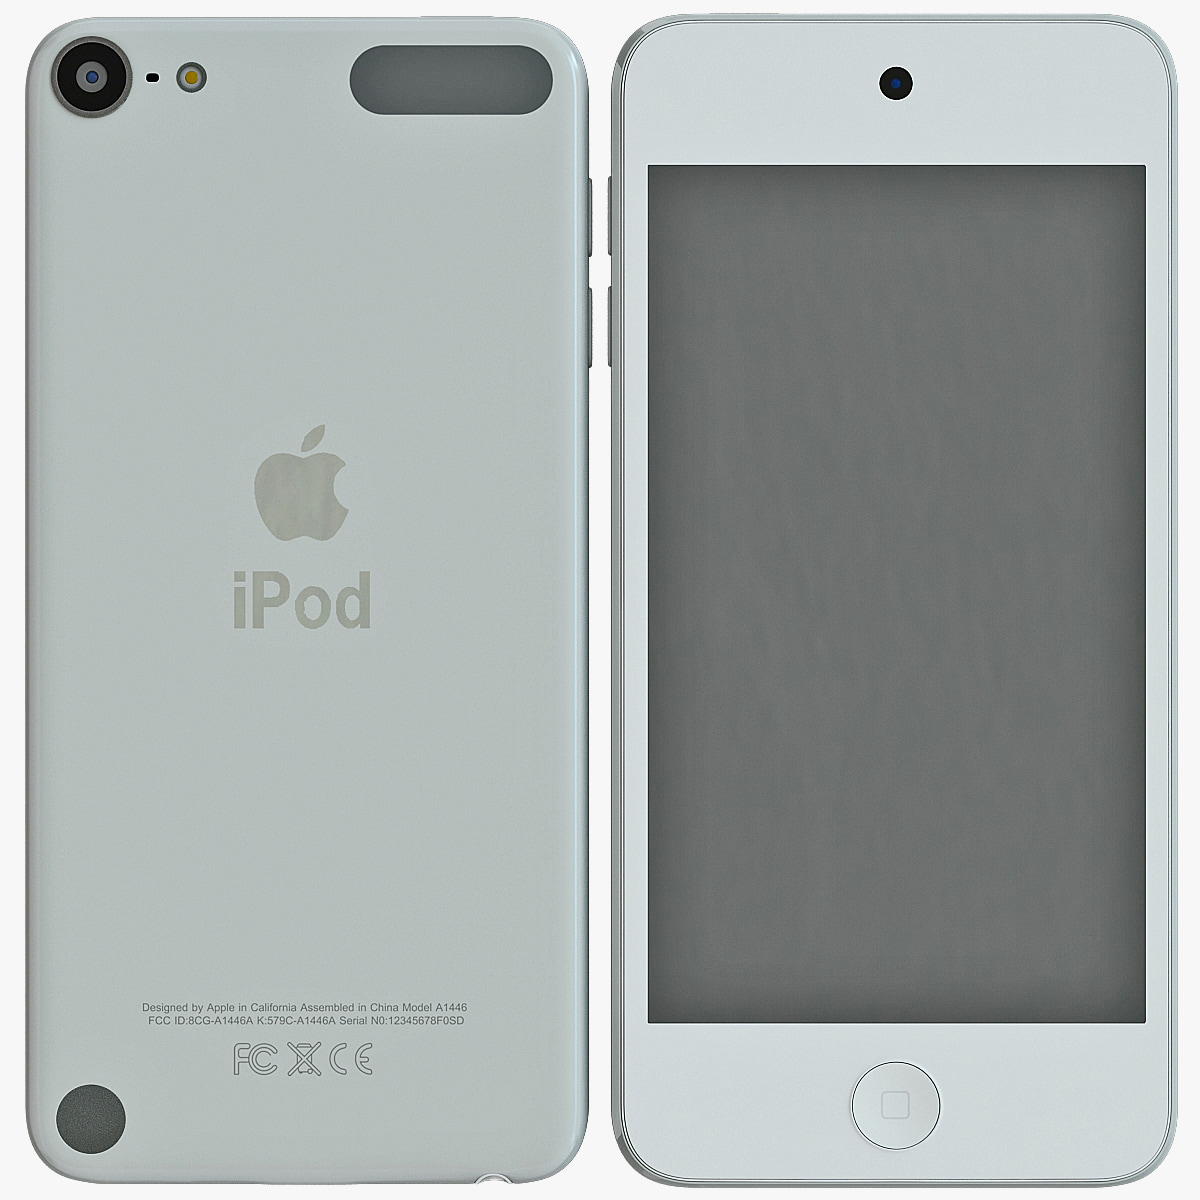 Ipod_Nano_Generation_5th_Gray_000.jpg